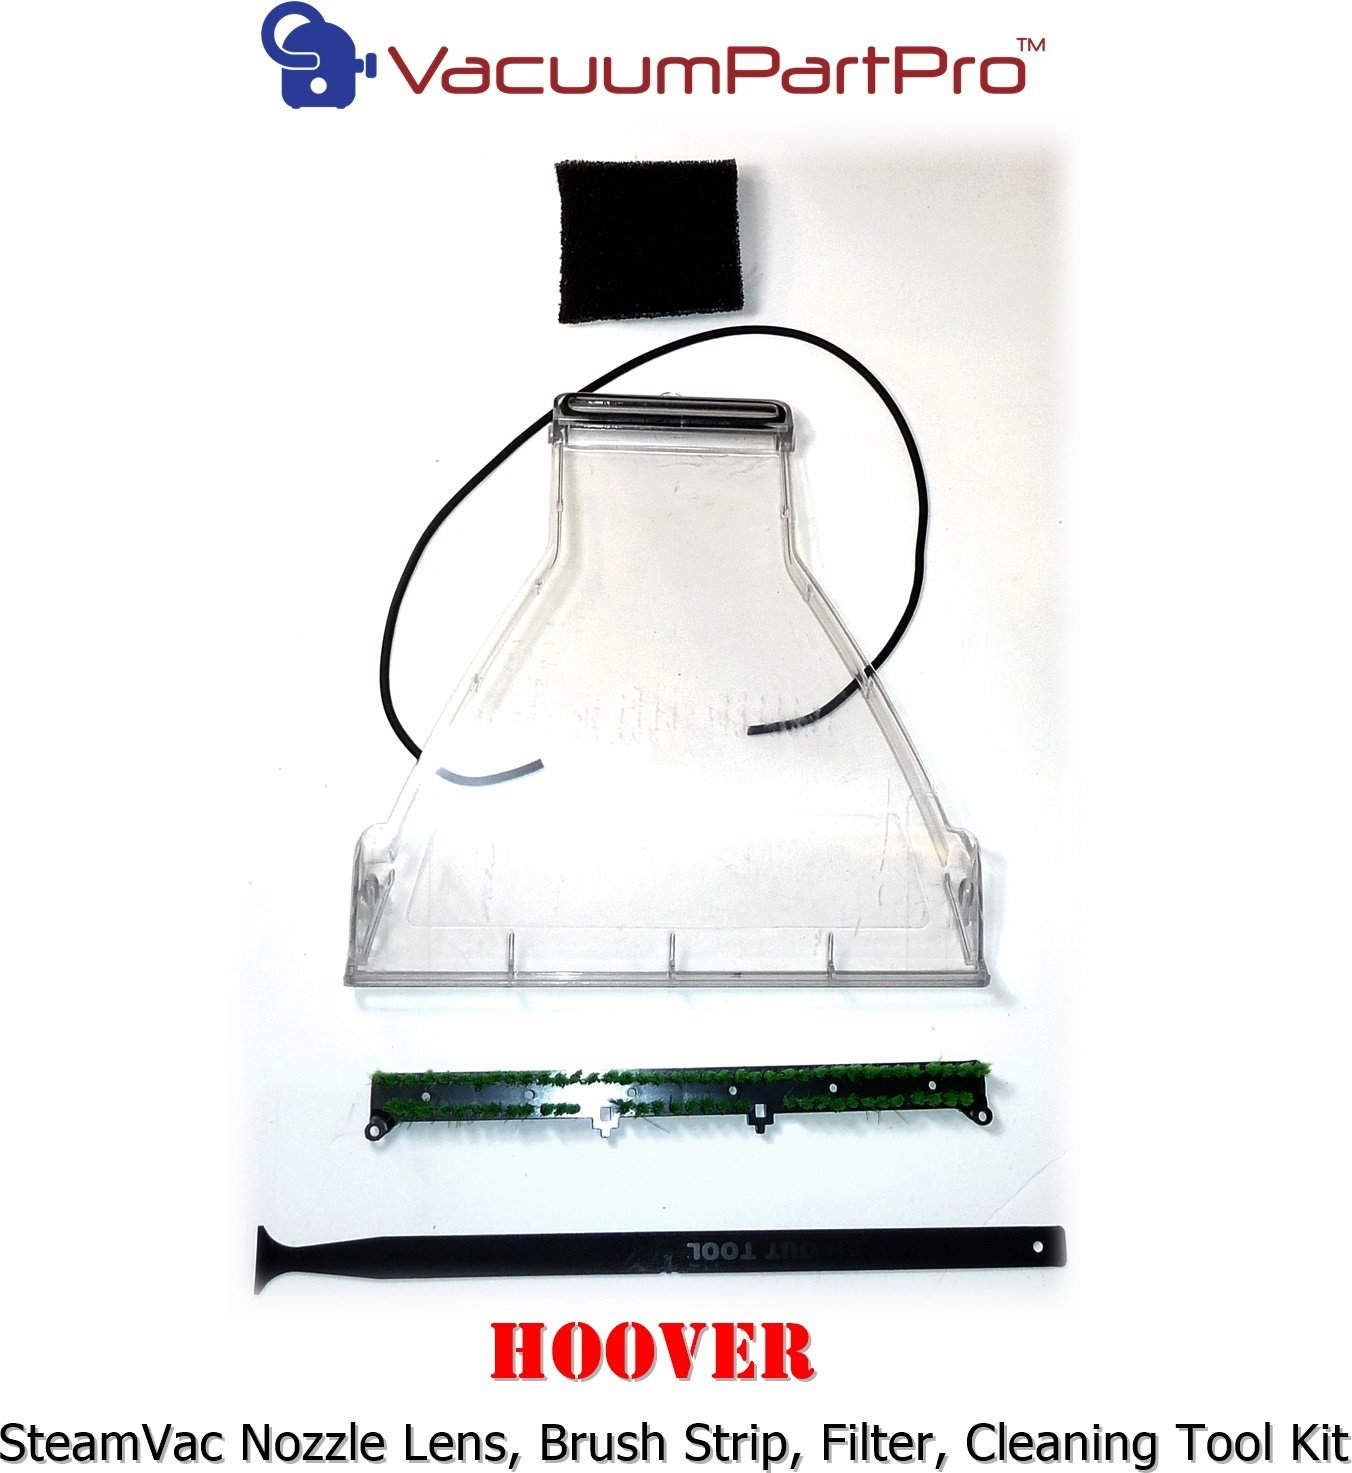 Hoover SteamVac Rebuild & Maintenance Kit for Models with Stationary Brush Strip Vacuum Part Pro TM